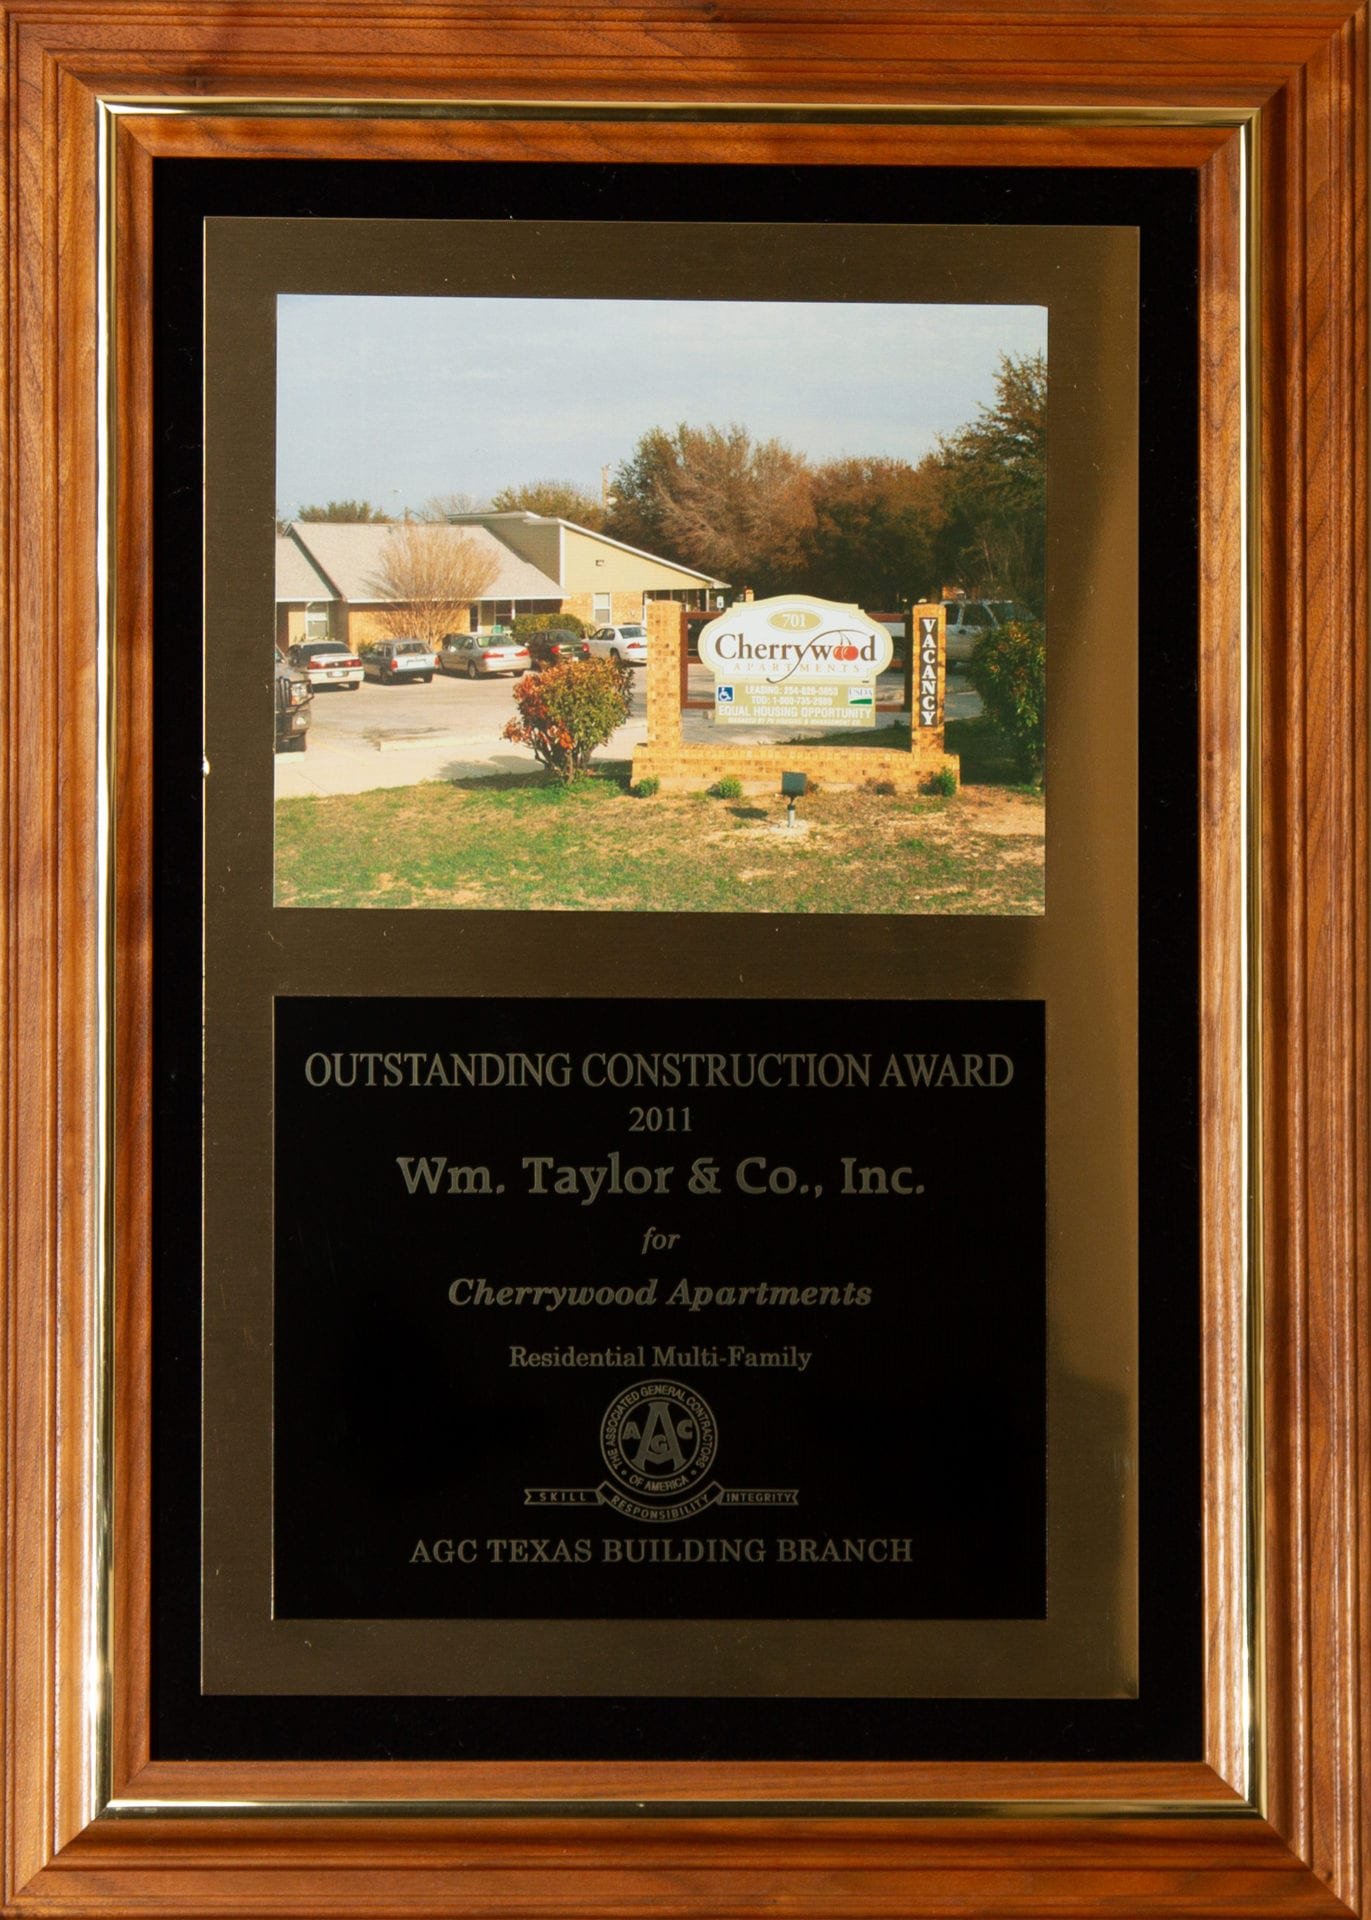 Wm. Taylor & Co. General Contractors - Outstanding Construction Award 2011